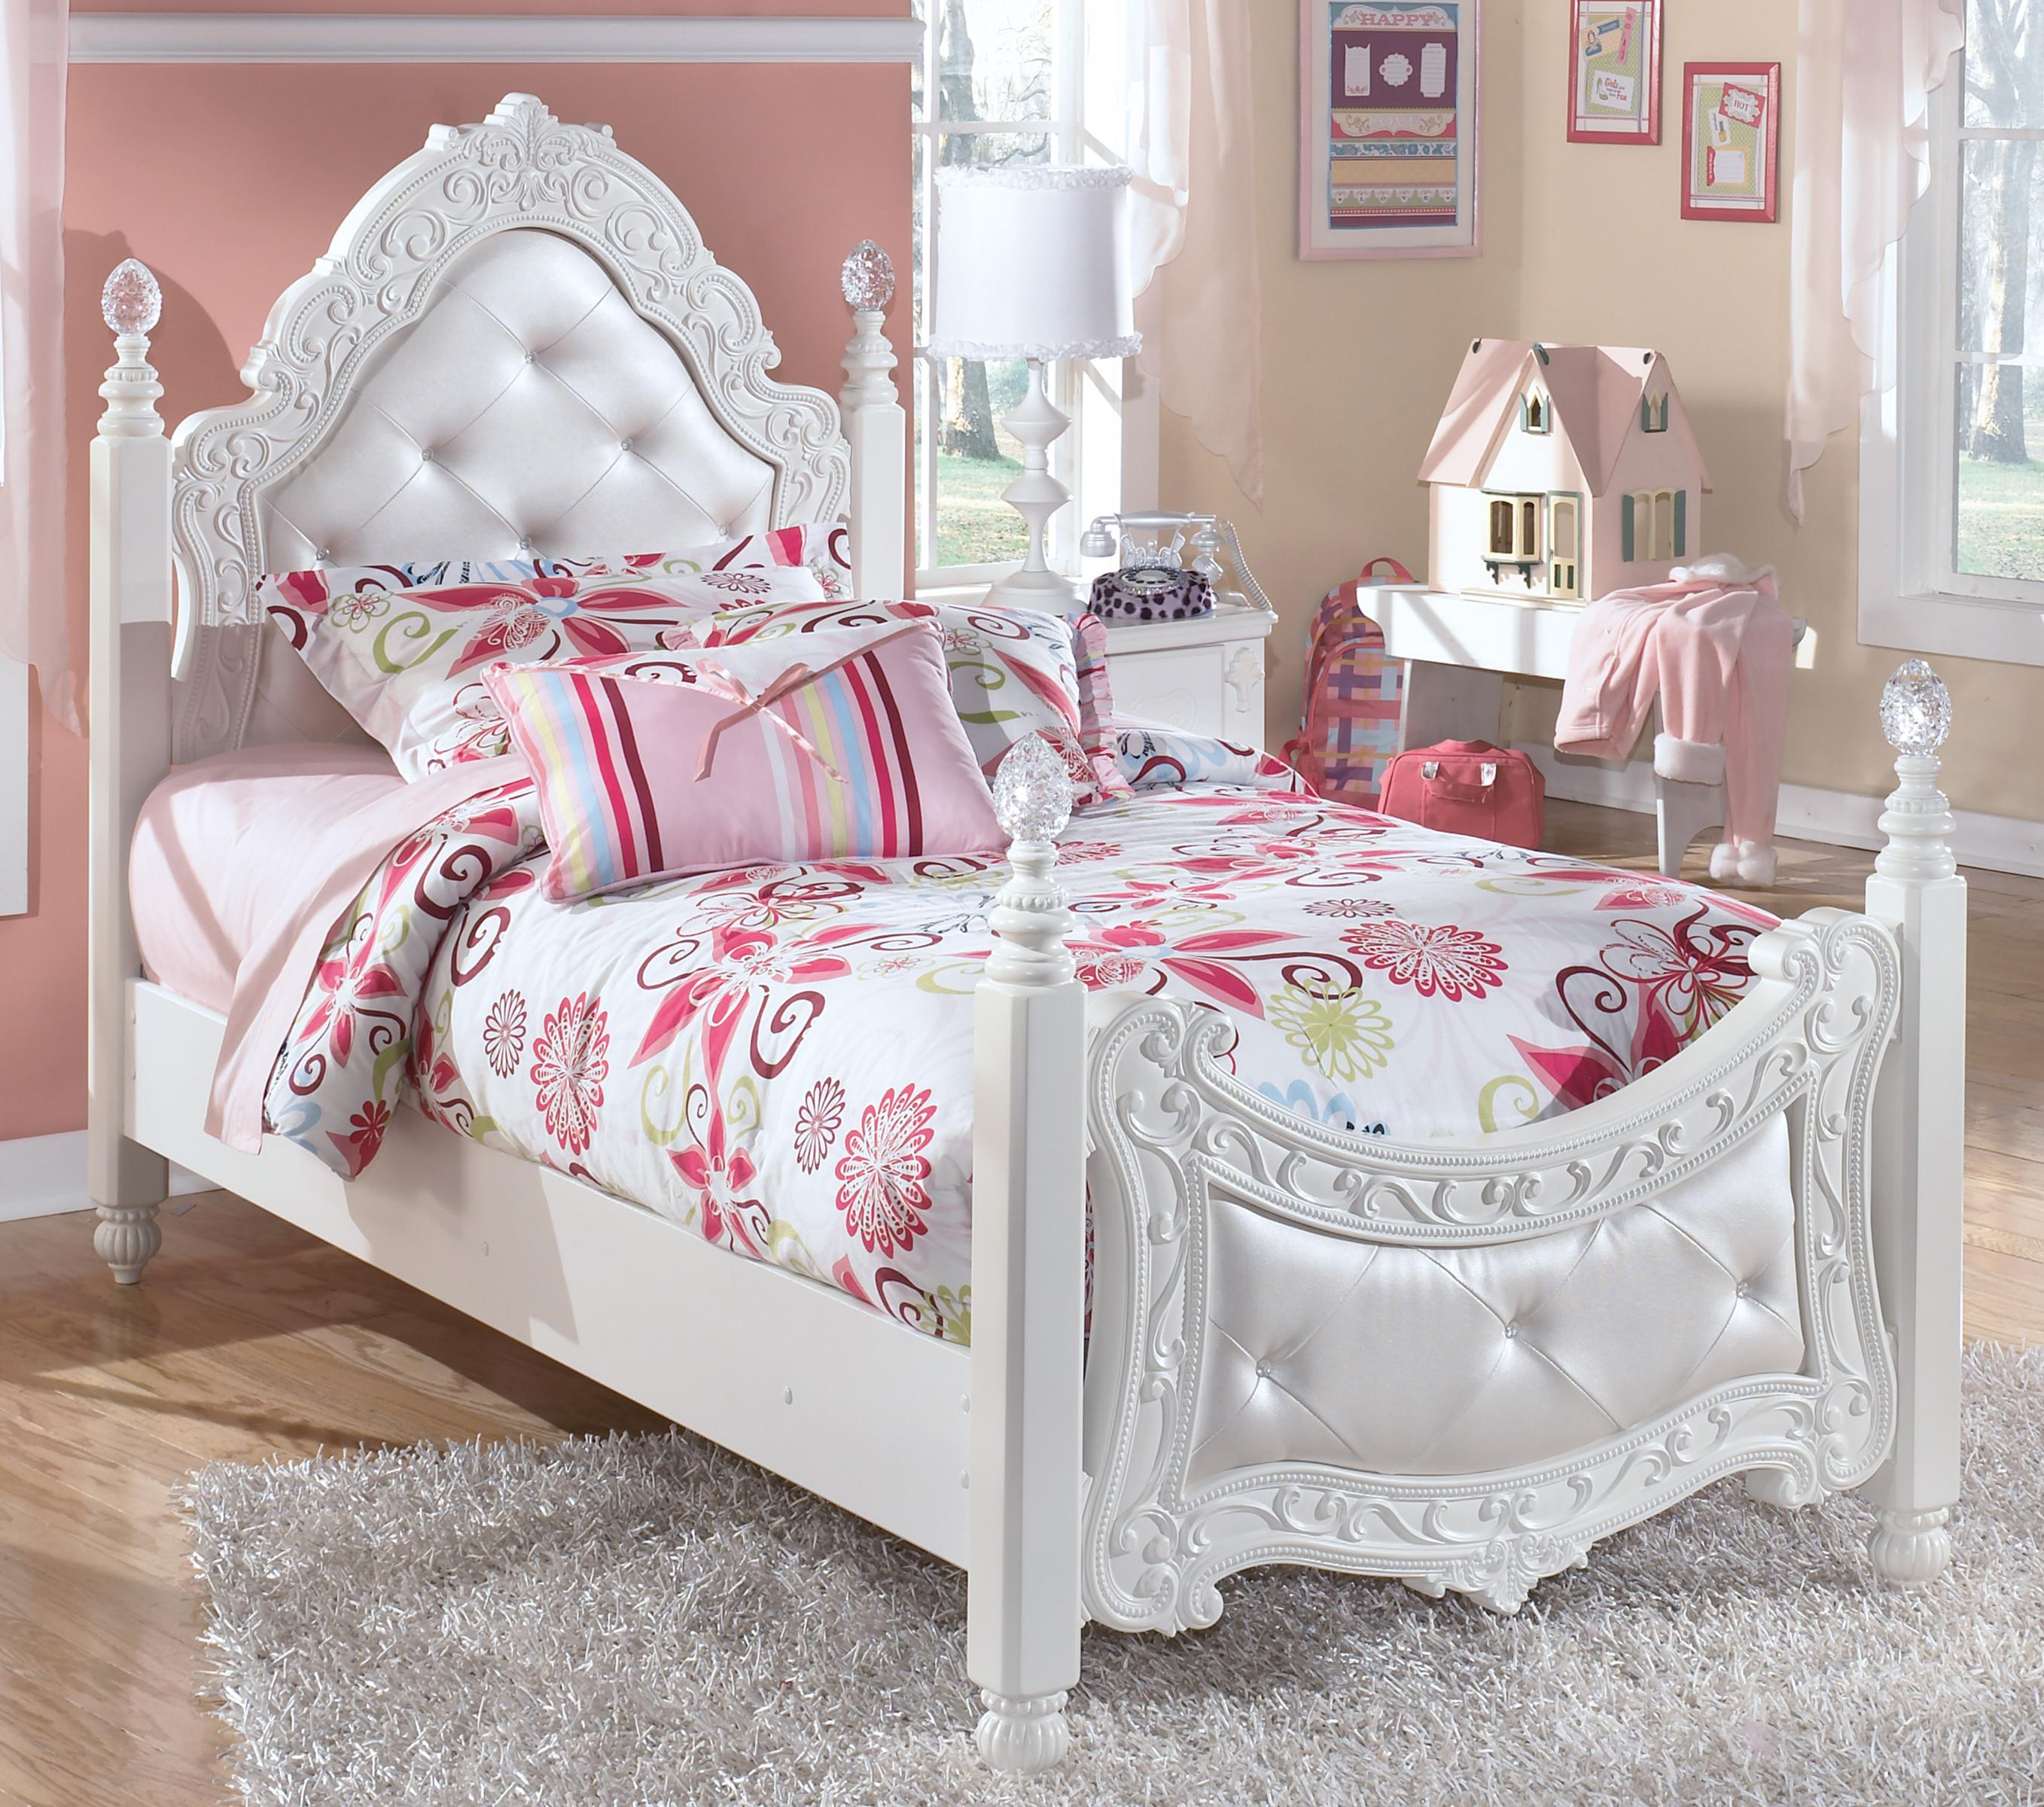 Signature Design By Ashley Exquisite Twin Ornate Poster Bed With Tufted Headboard Footboard Value City Furniture Upholstered Beds